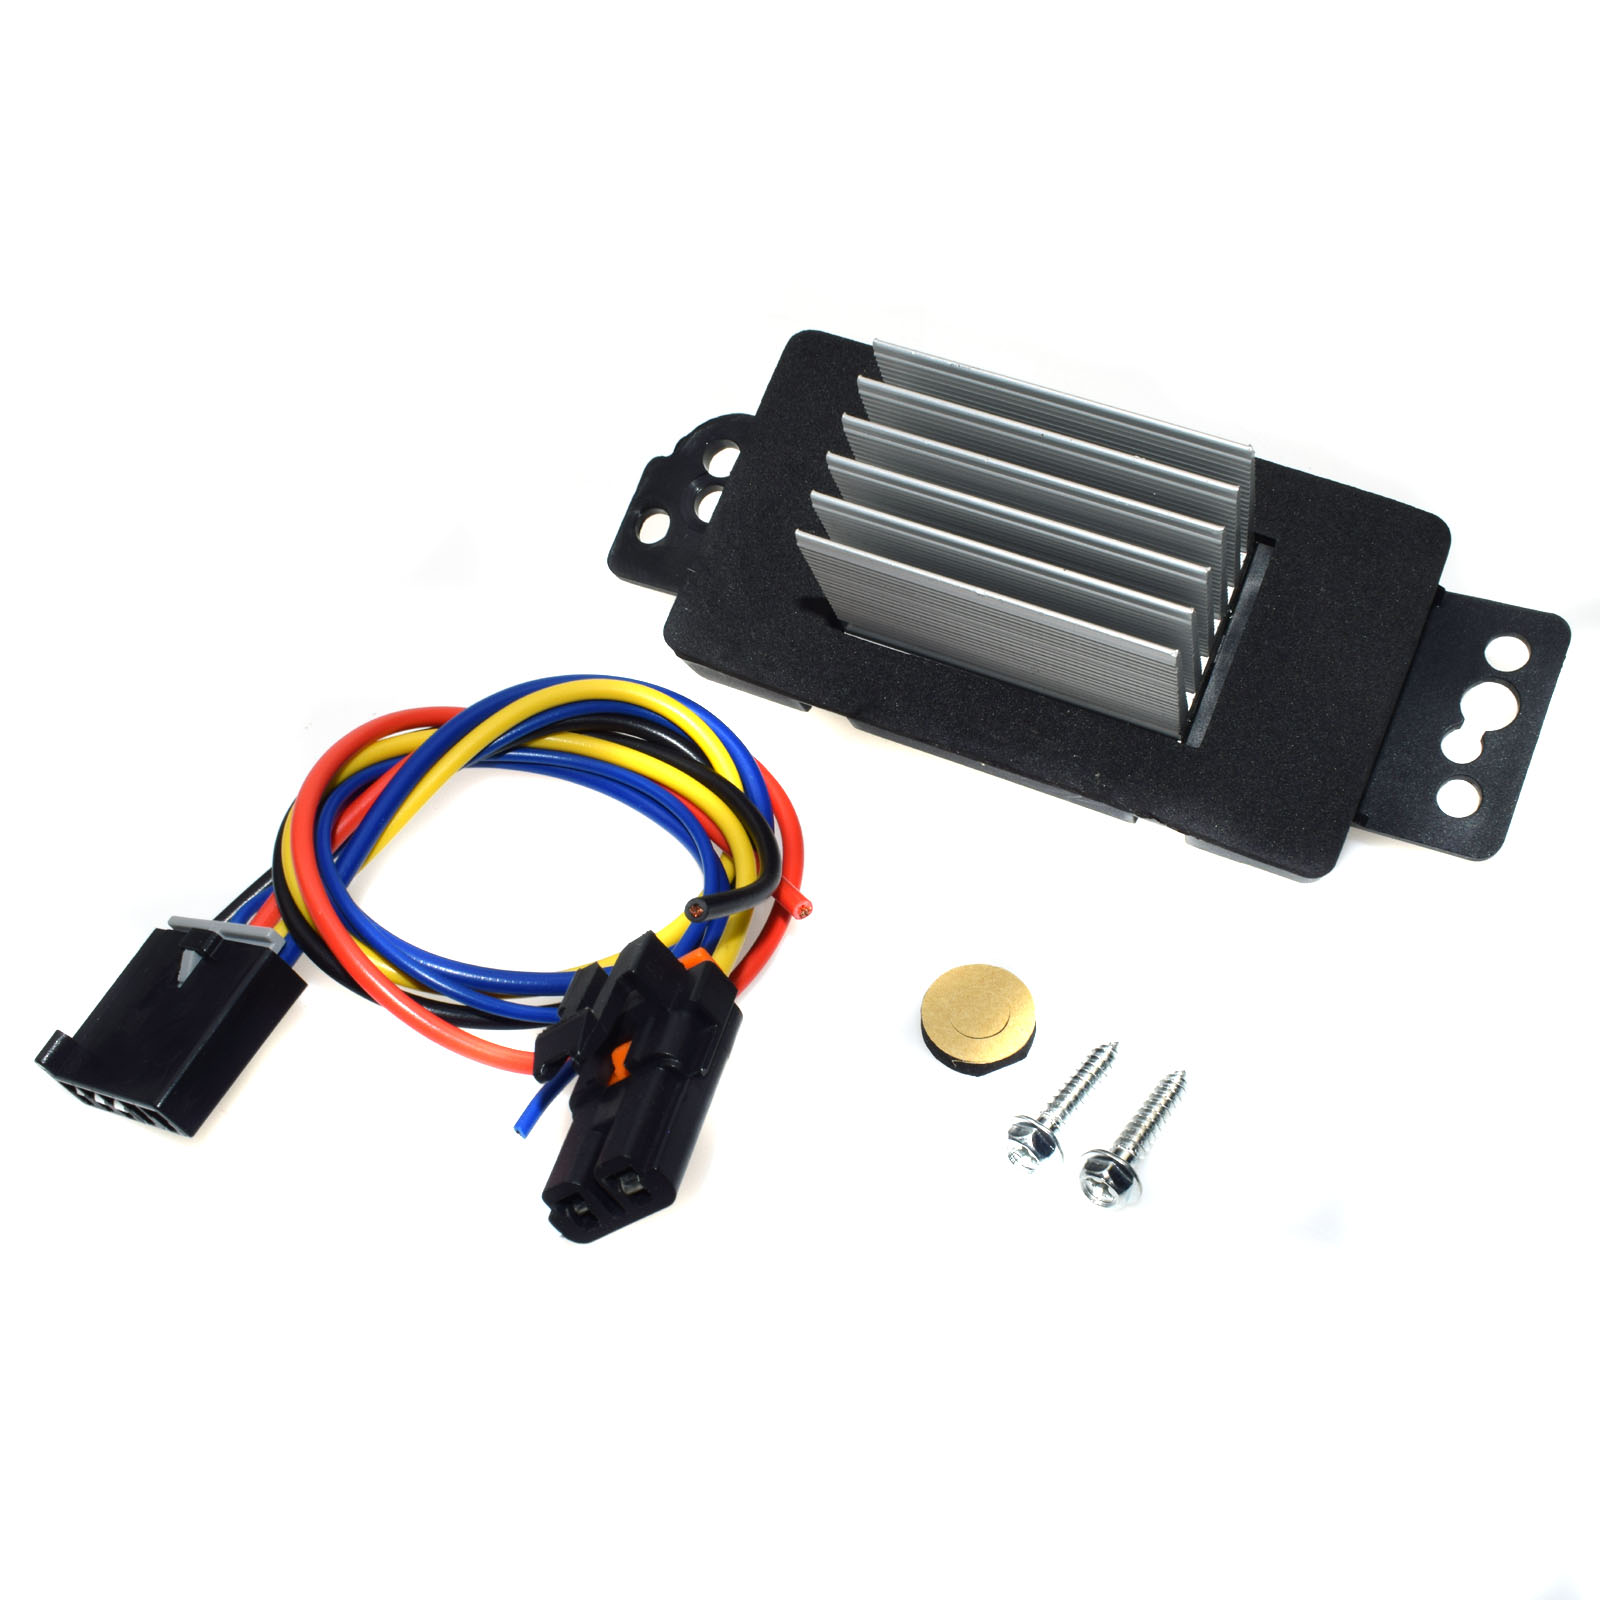 small resolution of wolfigo new hvac blower motor resistor with plug harness 15850268 22754990 ru359 1580888 for pontiac chevrolet impala buick in blower motors from